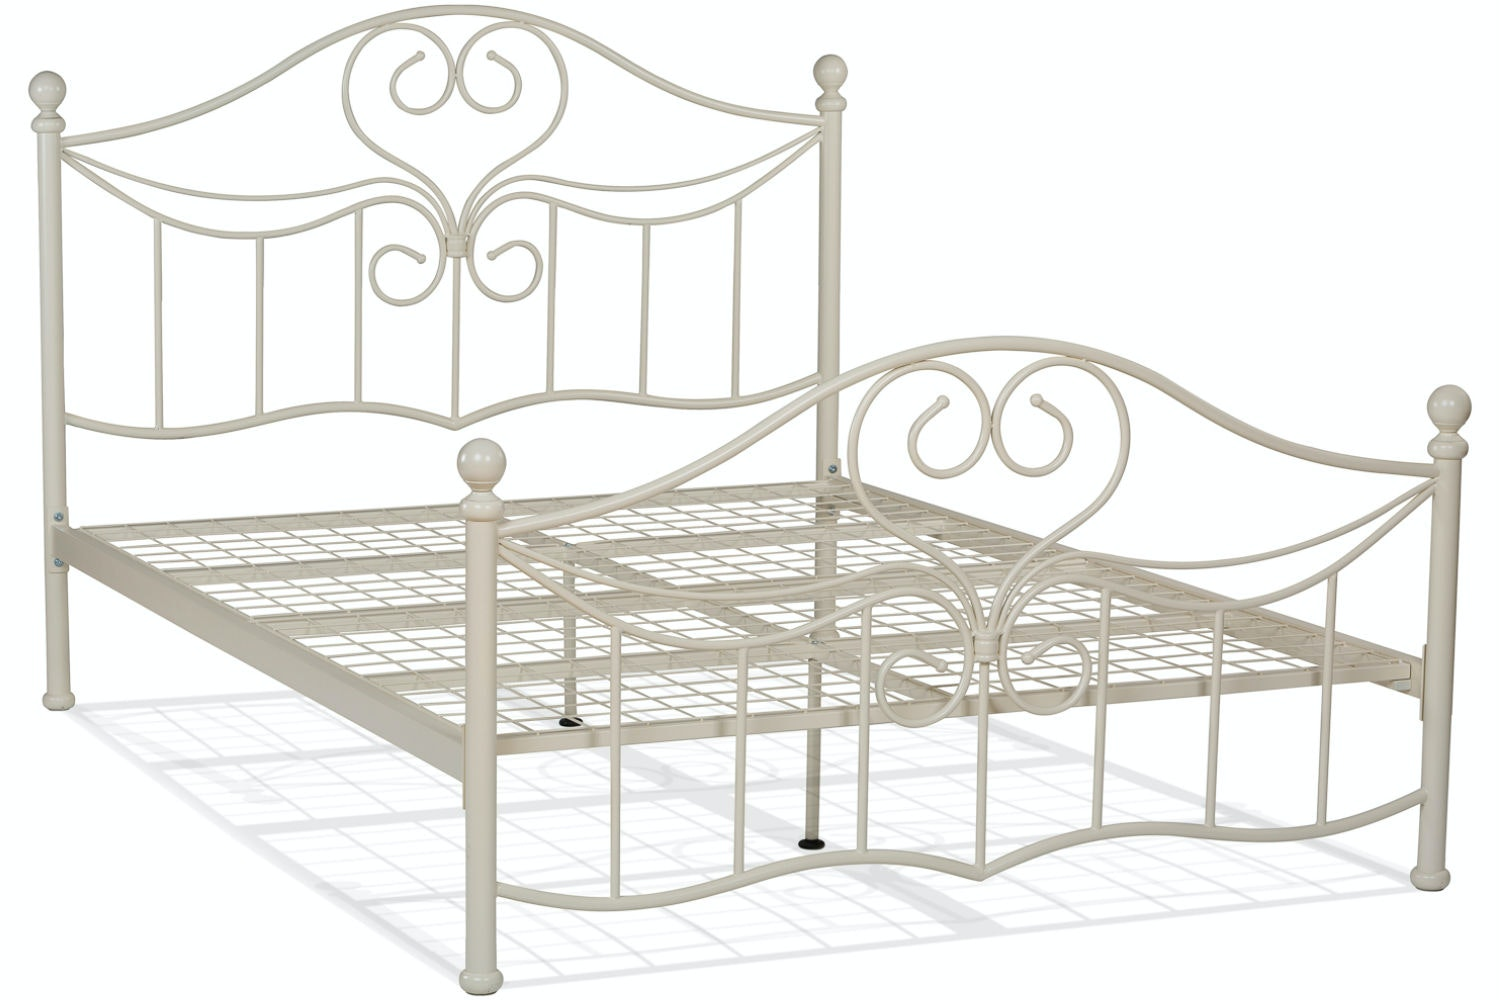 Julliet Double Metal Bed Frame | 4ft6 | Ivory